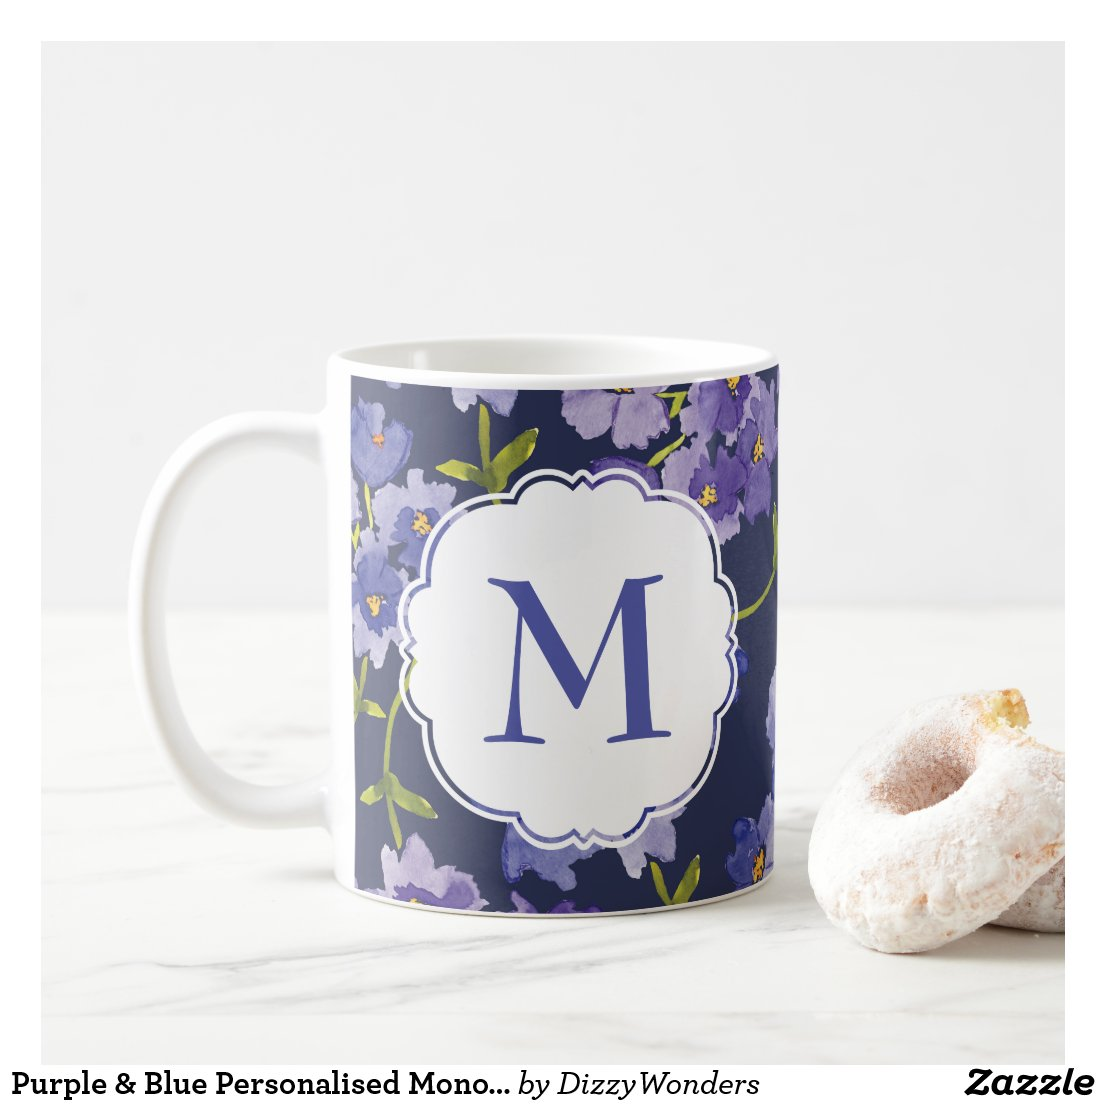 Purple & Blue Personalised Monogram Floral Mug